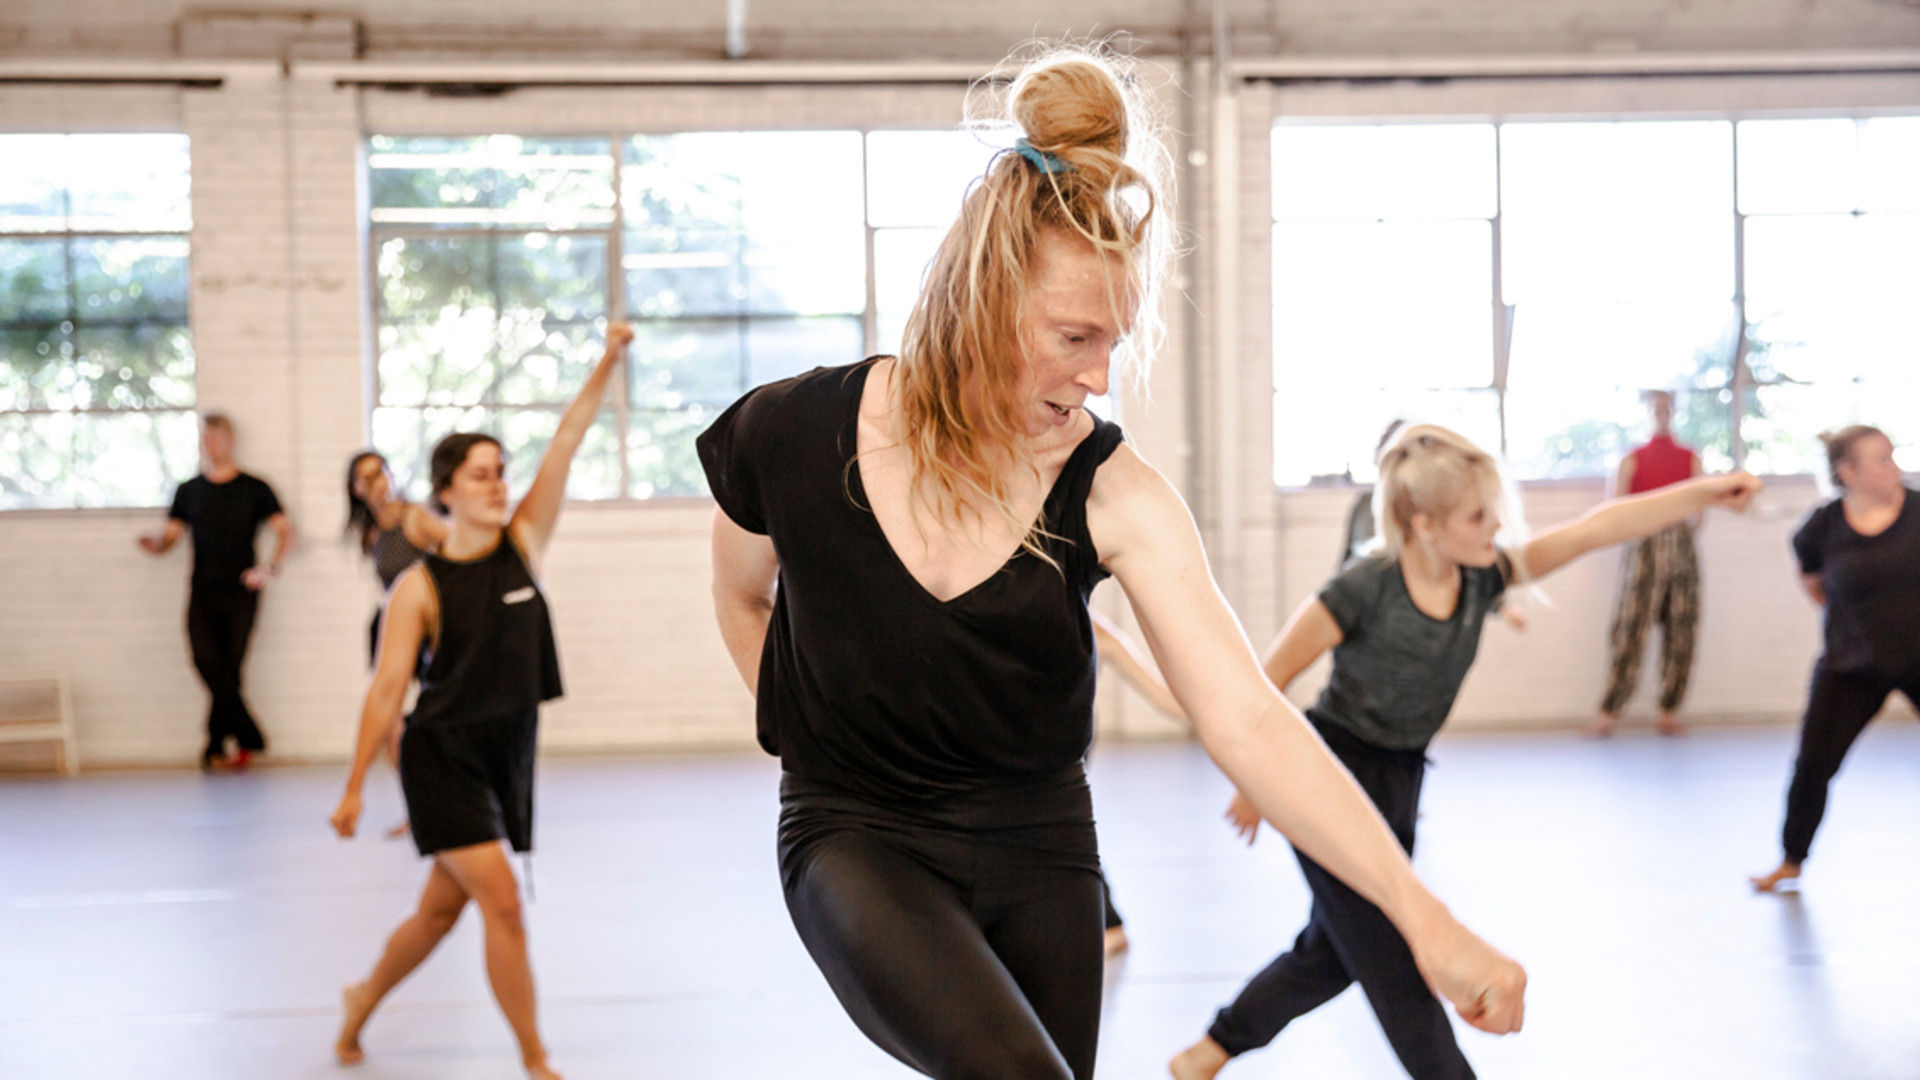 A close up of a dancer striking a strong pose with one arm extended down. Dancers in the background also strike strong poses with arms extended in various directions